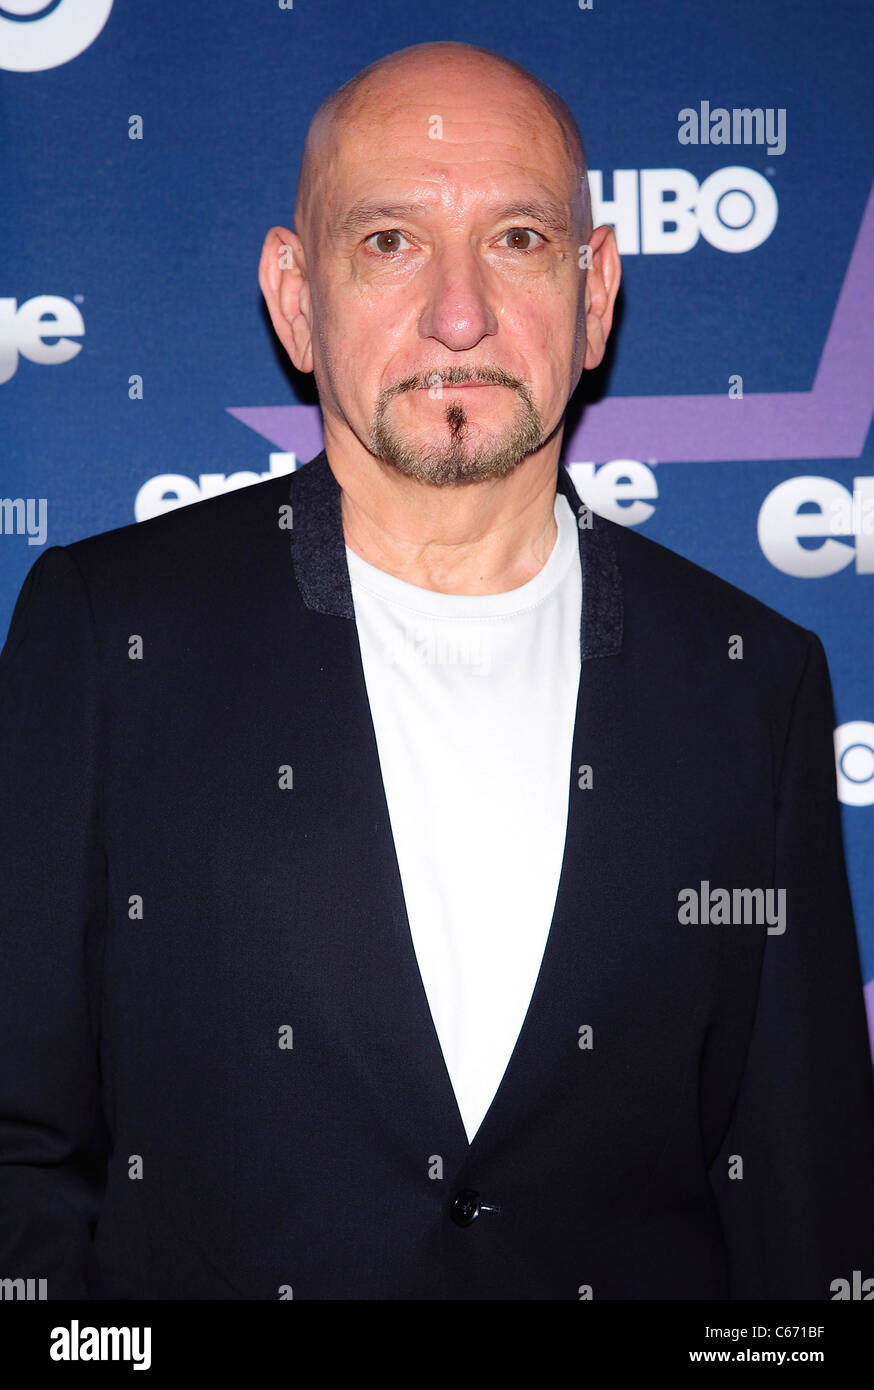 Sir Ben Kingsley at arrivals for ENTOURAGE Season Eight Premiere, The Beacon, New York, NY July 19, 2011. Photo - Stock Image